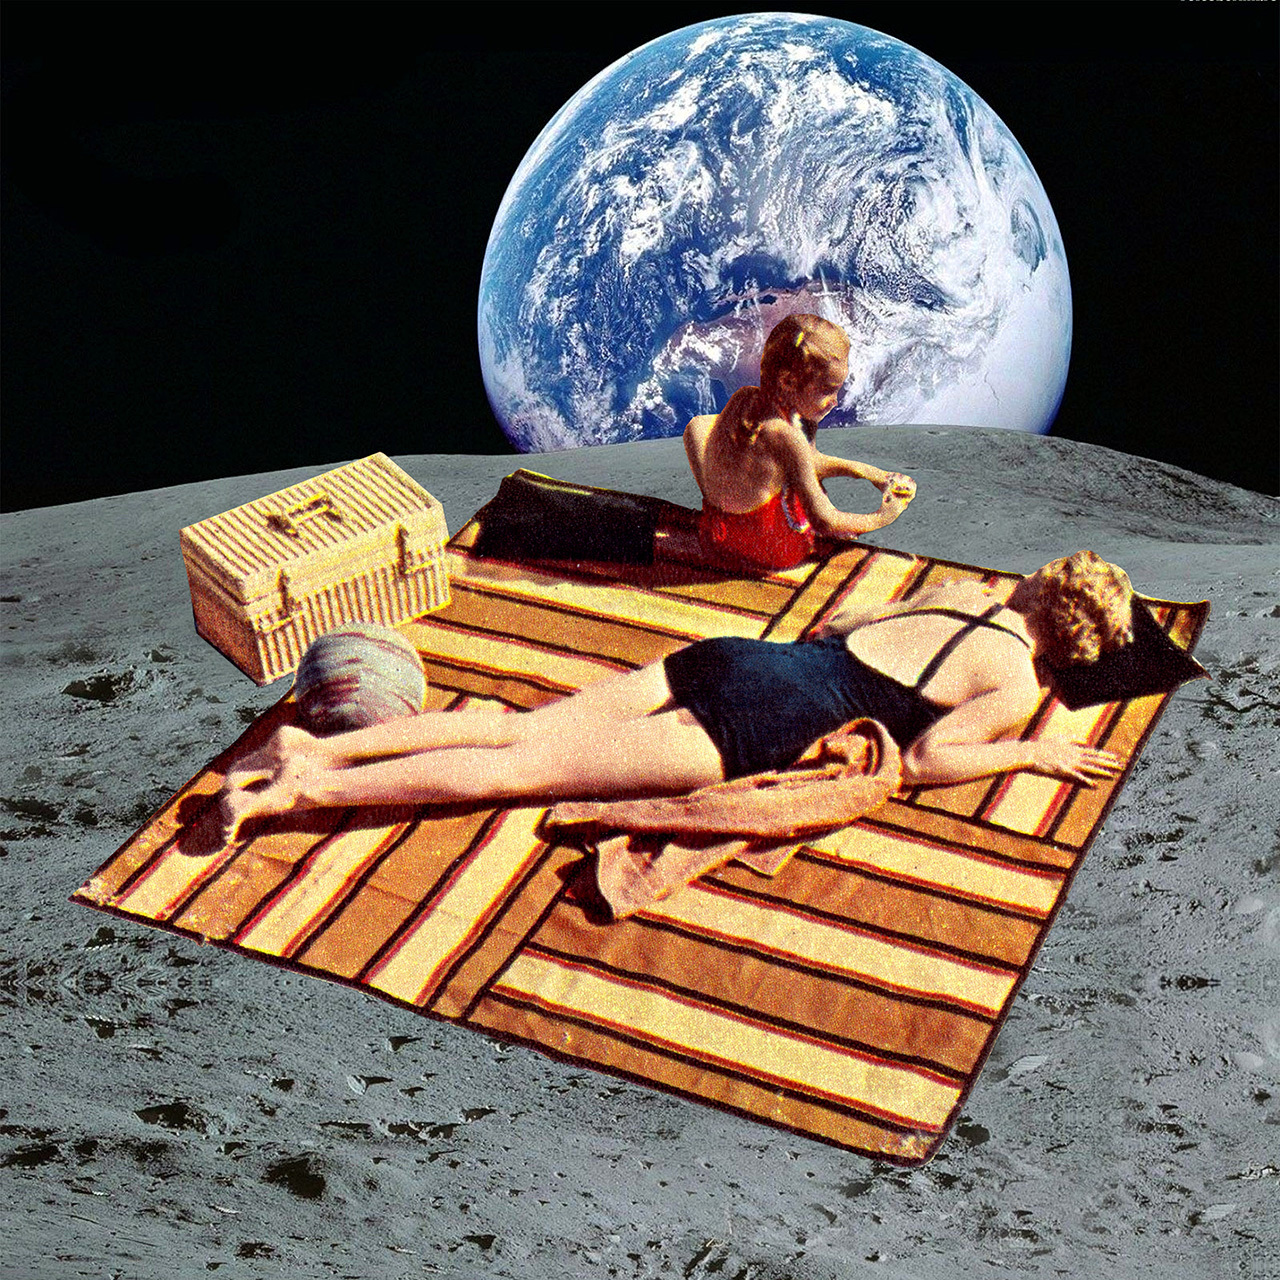 Collage, collage art, and sunbathing image